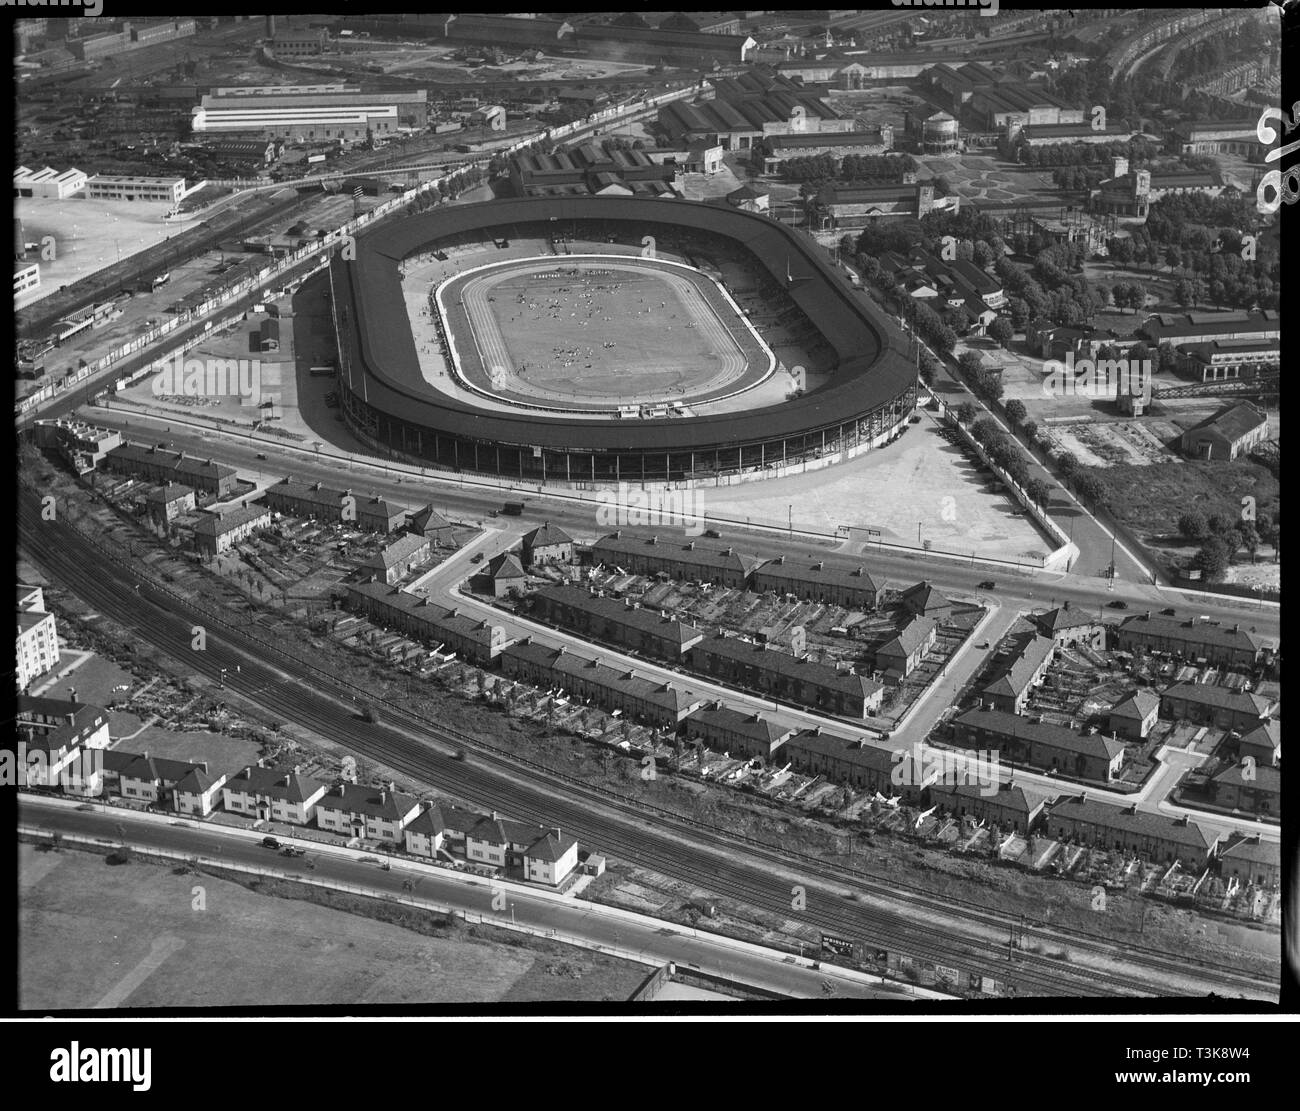 White City Stadium, Shepherd's Bush, London, 1935. The stadium was built for the 1908 Olympic Games held in London. The stadium was a venue for various sports during its history and was particularly associated with greyhound racing and speedway after the Second World War. It was demolished in 1985 and the site was redeveloped as the BBC White City complex. - Stock Image